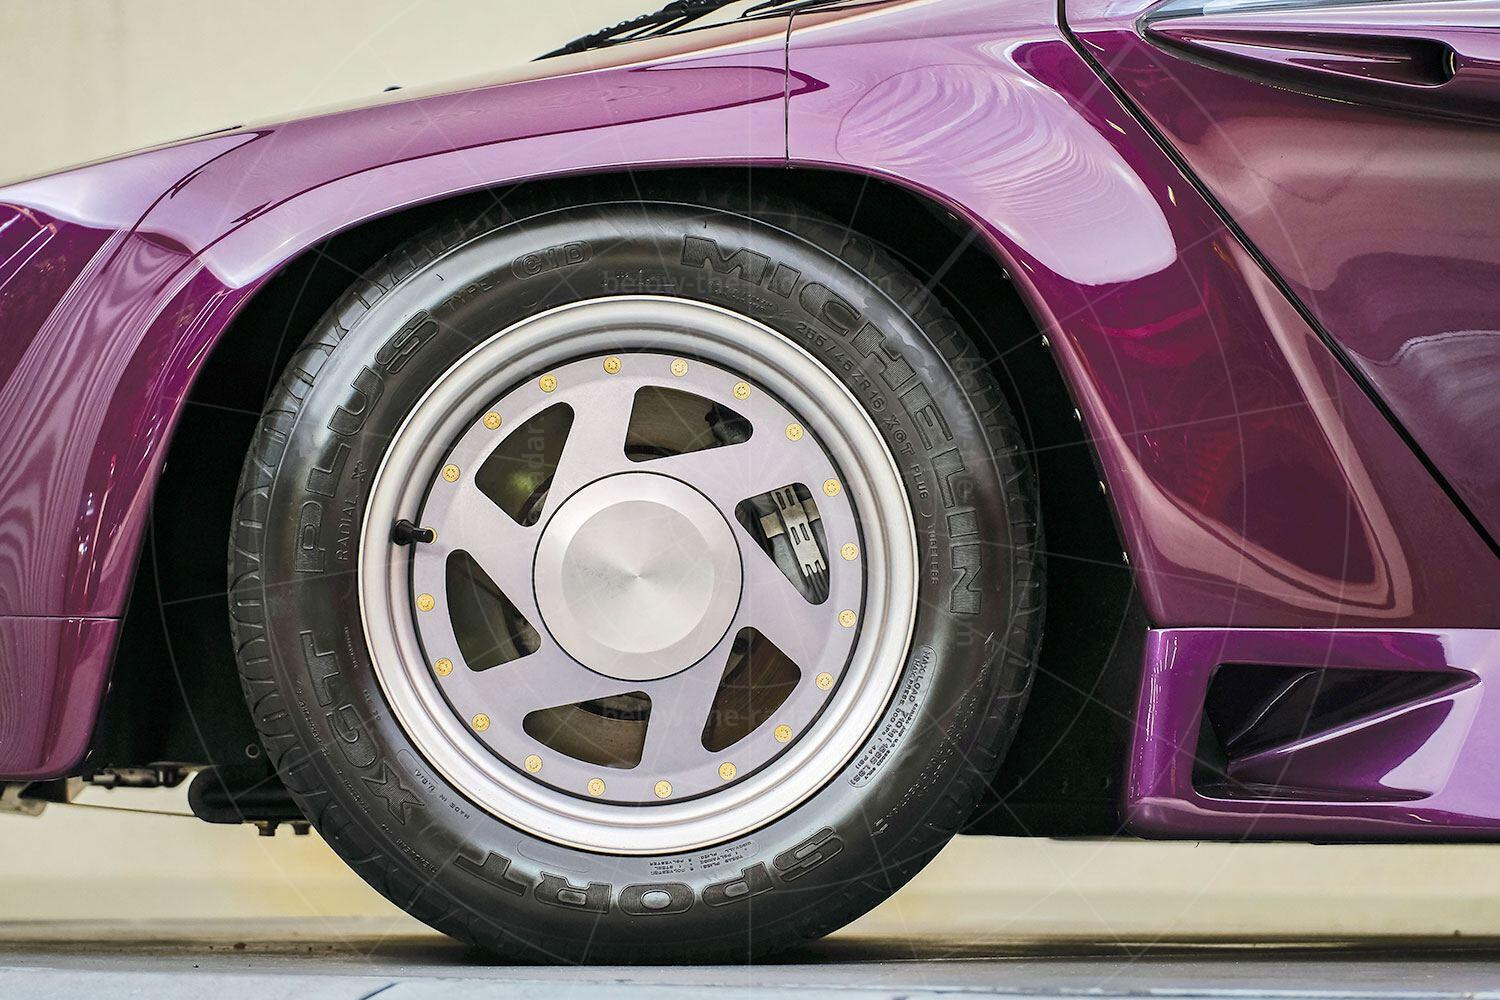 Vector W8 front wheel Pic: RM Sotheby's   Vector W8 front wheel